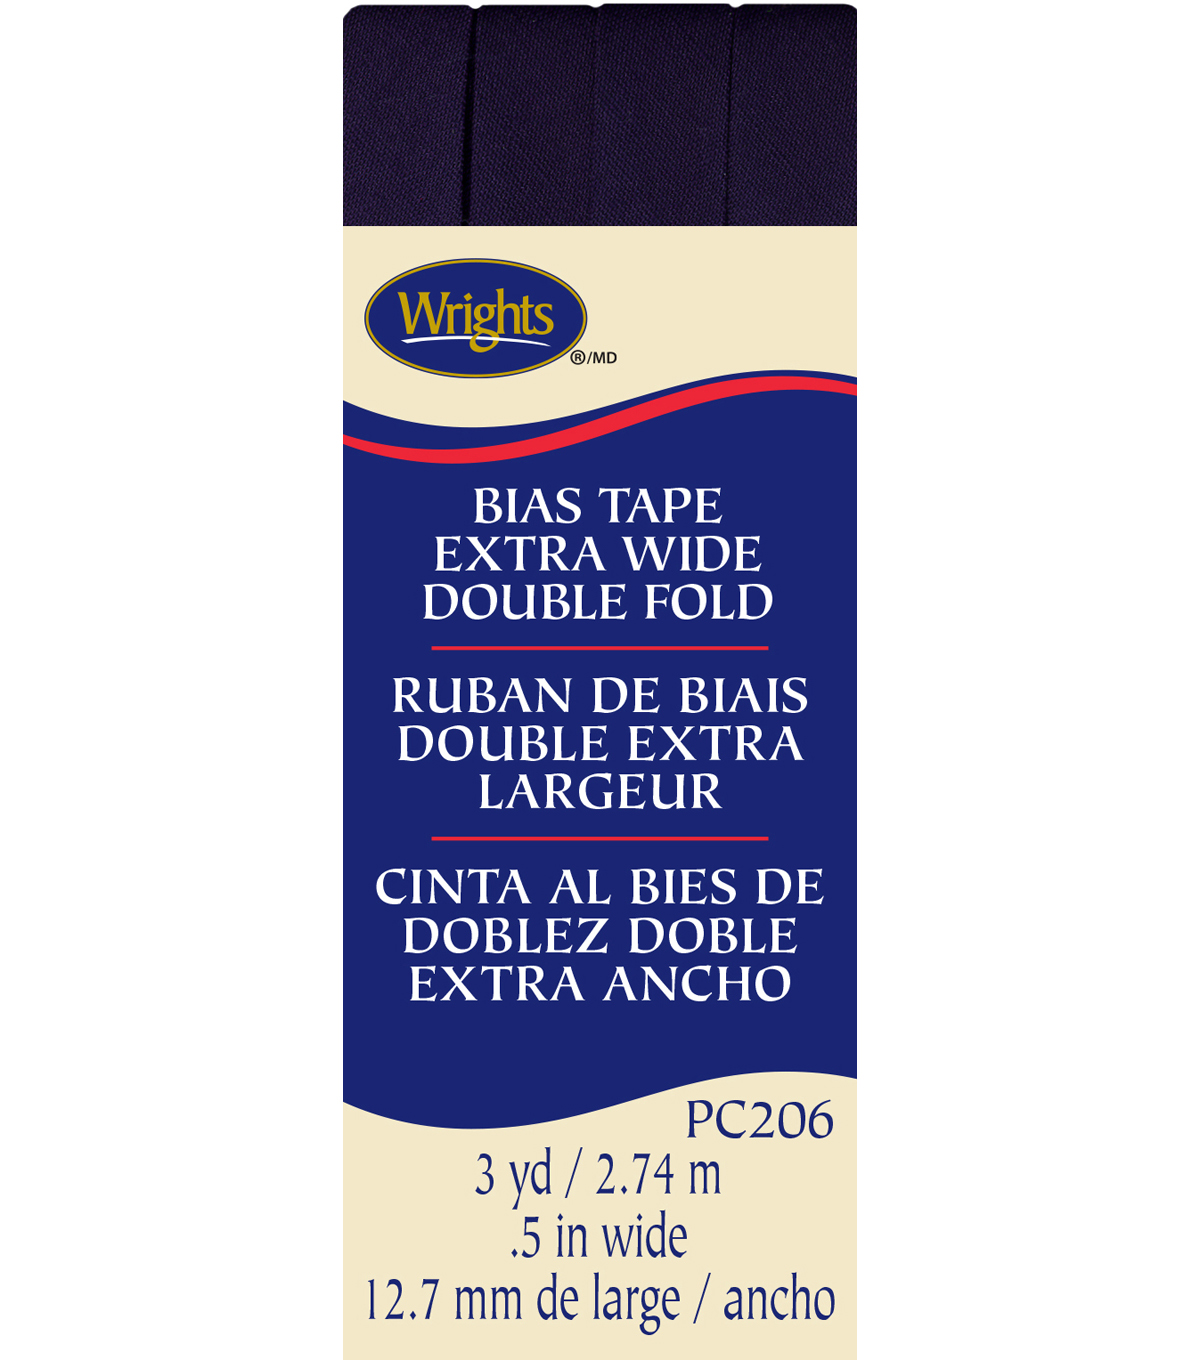 Wrights Extra Wide Double Fold Bias Tape, Blackberry